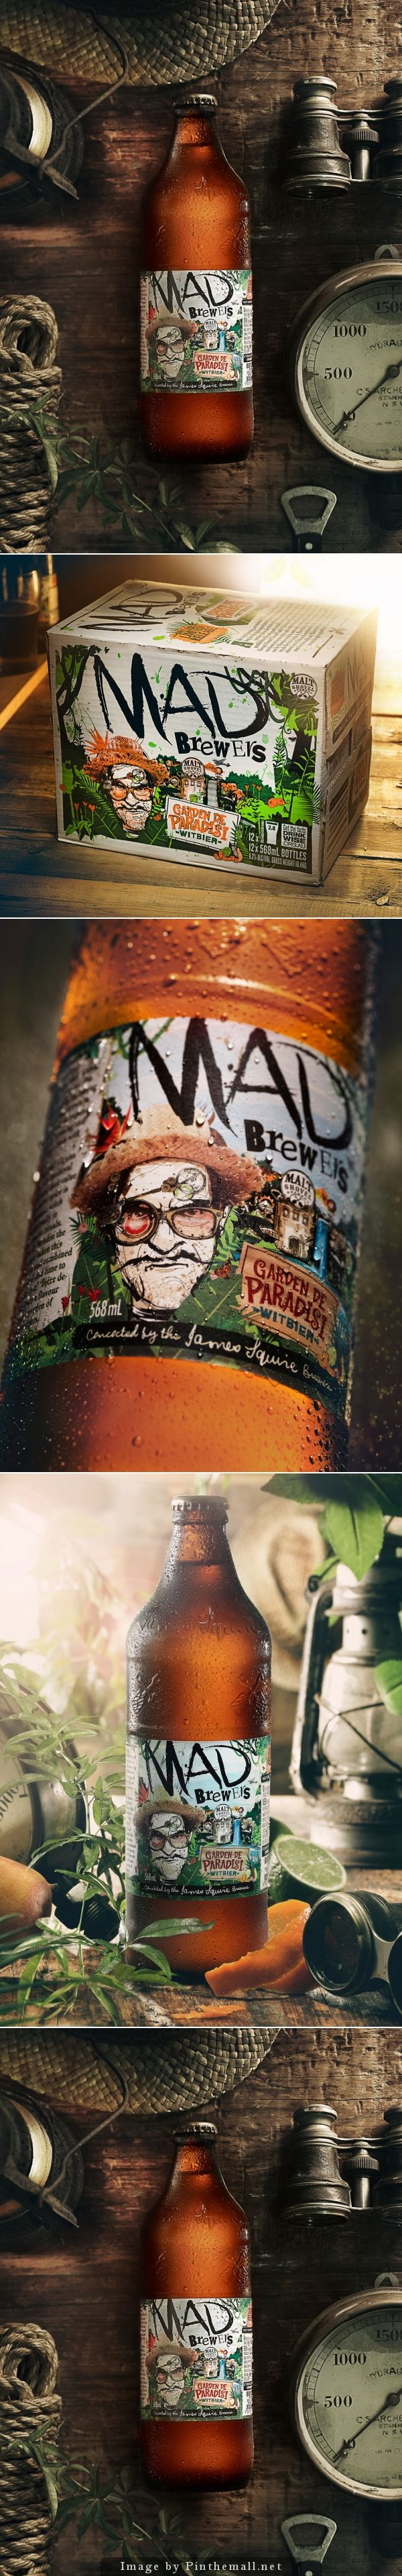 Mad Brewers' Garden De Paradisi is cool beer #packaging PD